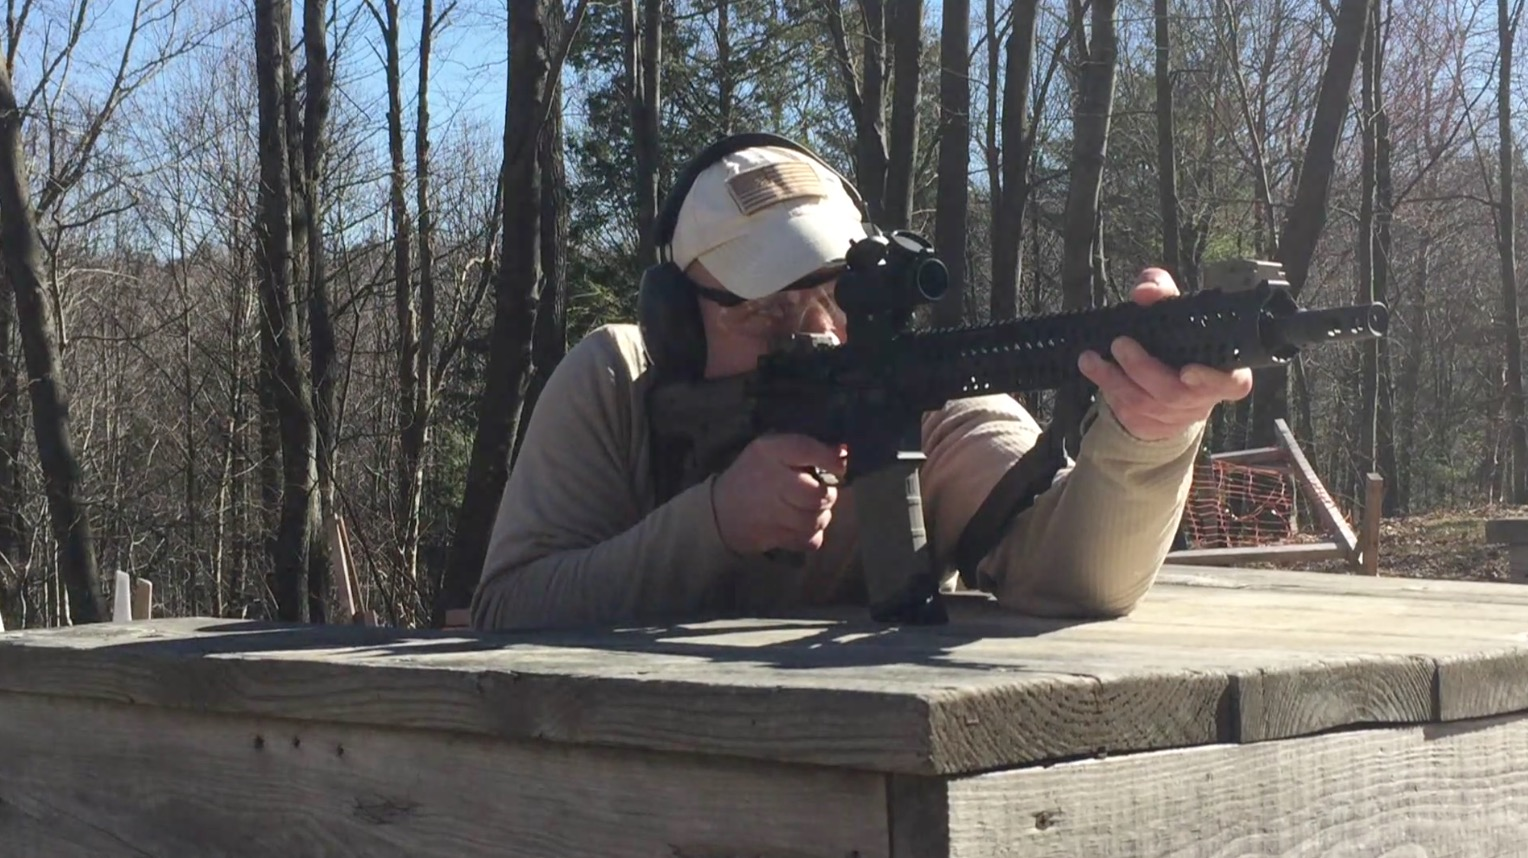 Vortex Spitfire AR 1X Prism Scope Review - The Liberty Report